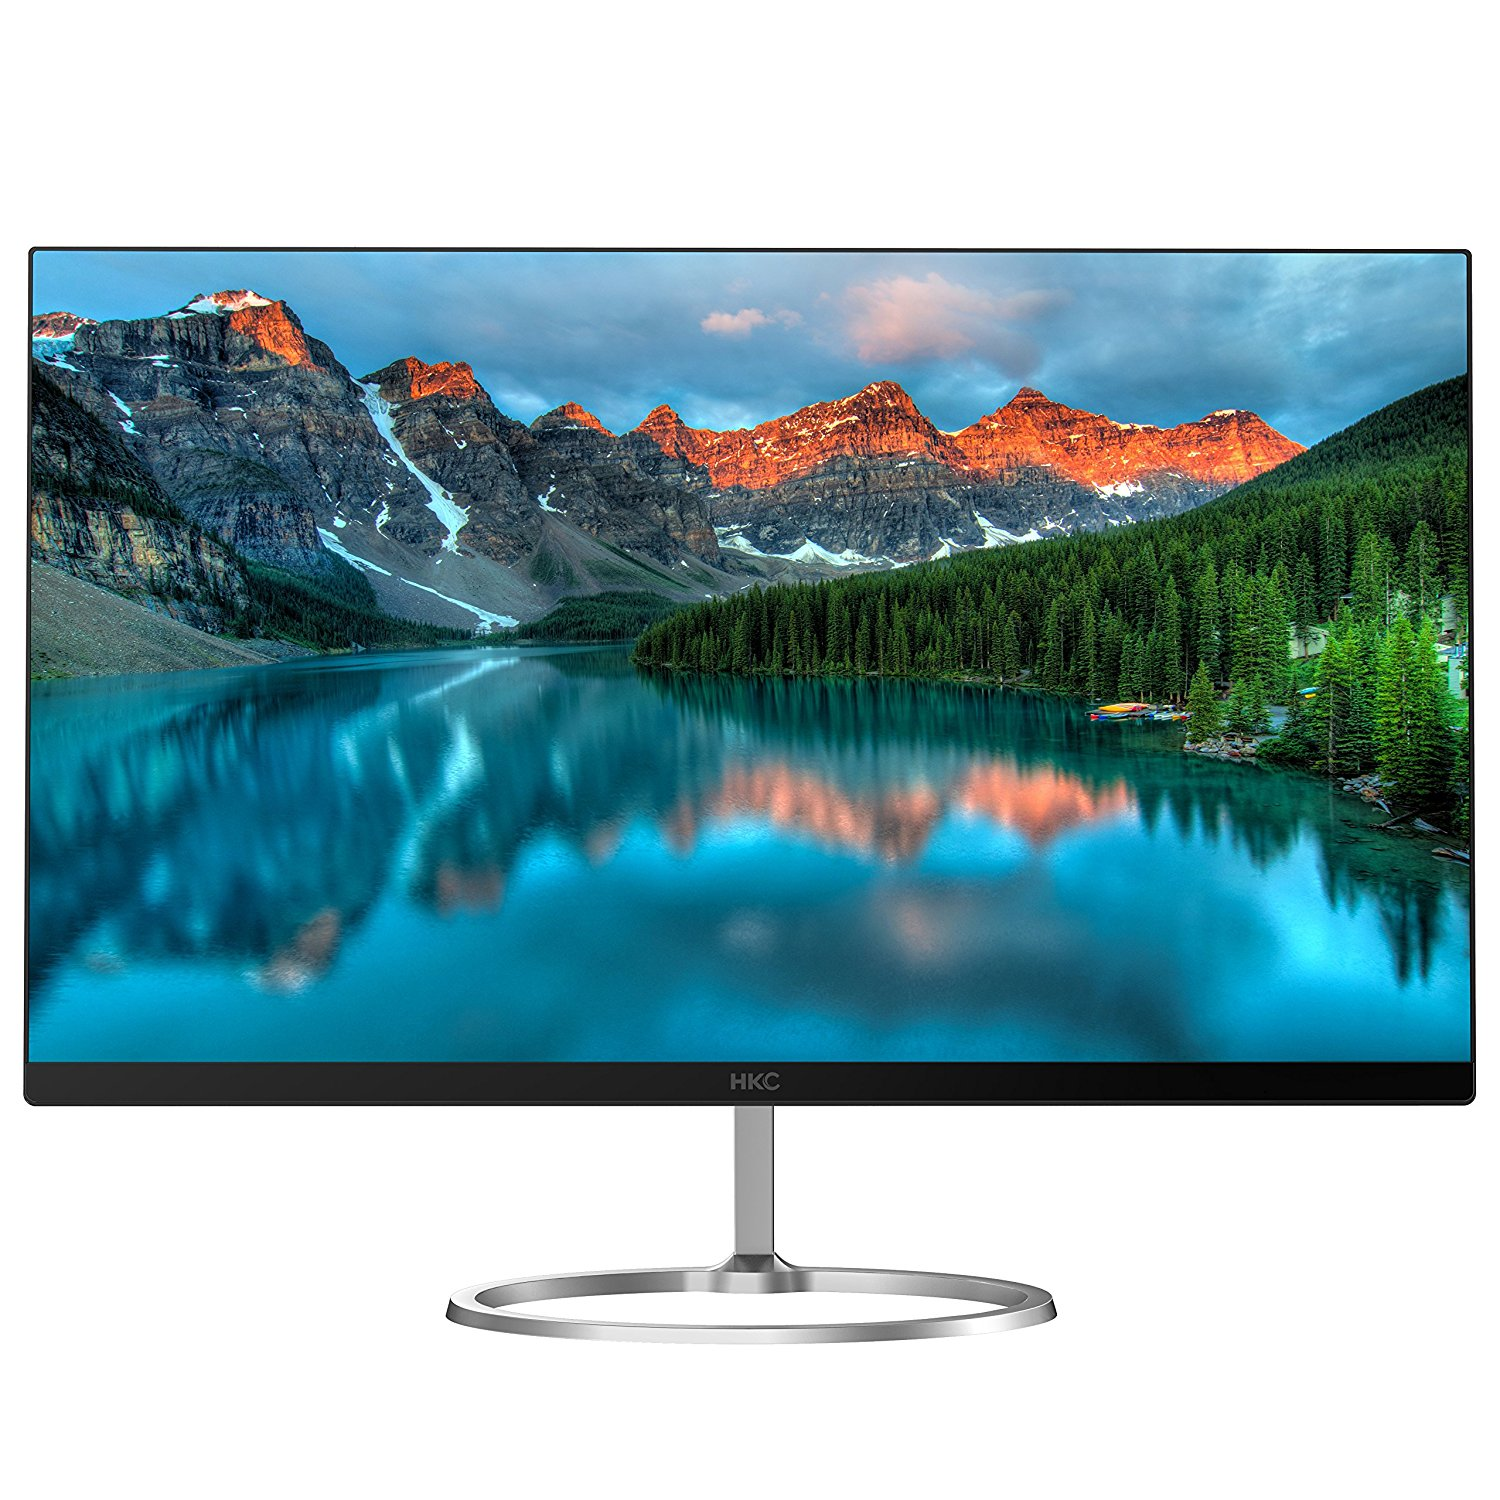 PC Monitor 24 Zoll